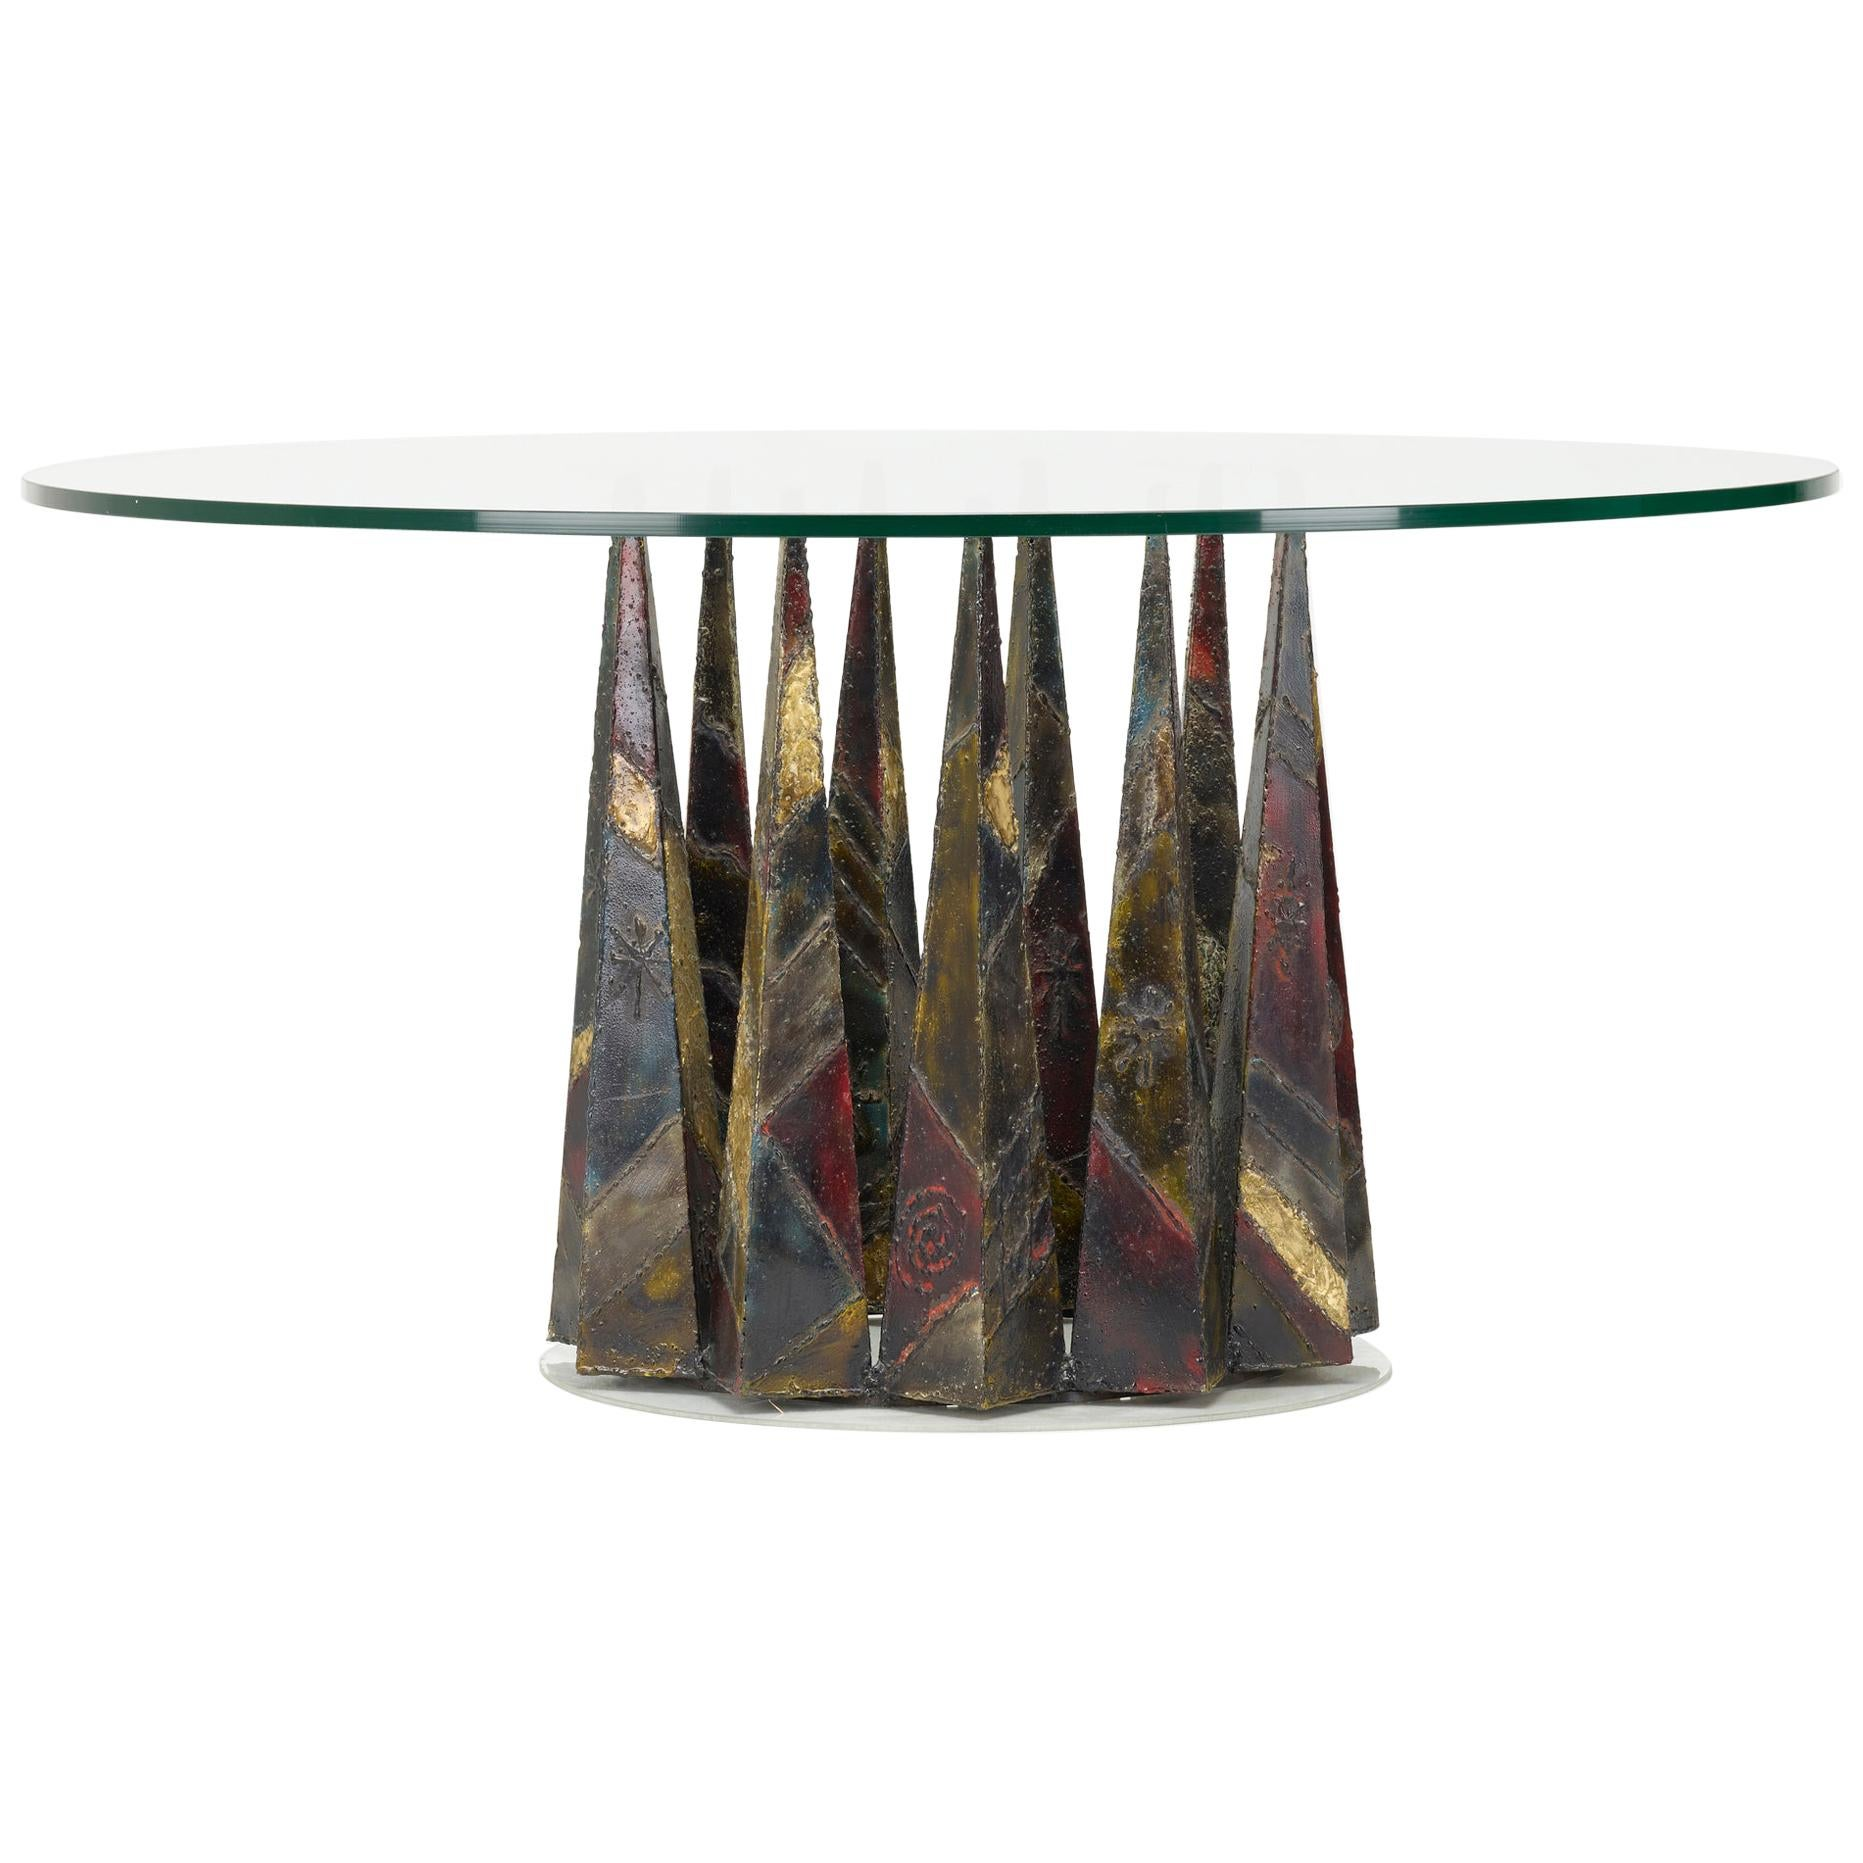 Rare Circular Paul Evans Welded and Patinated Steel Dining Table for Directional